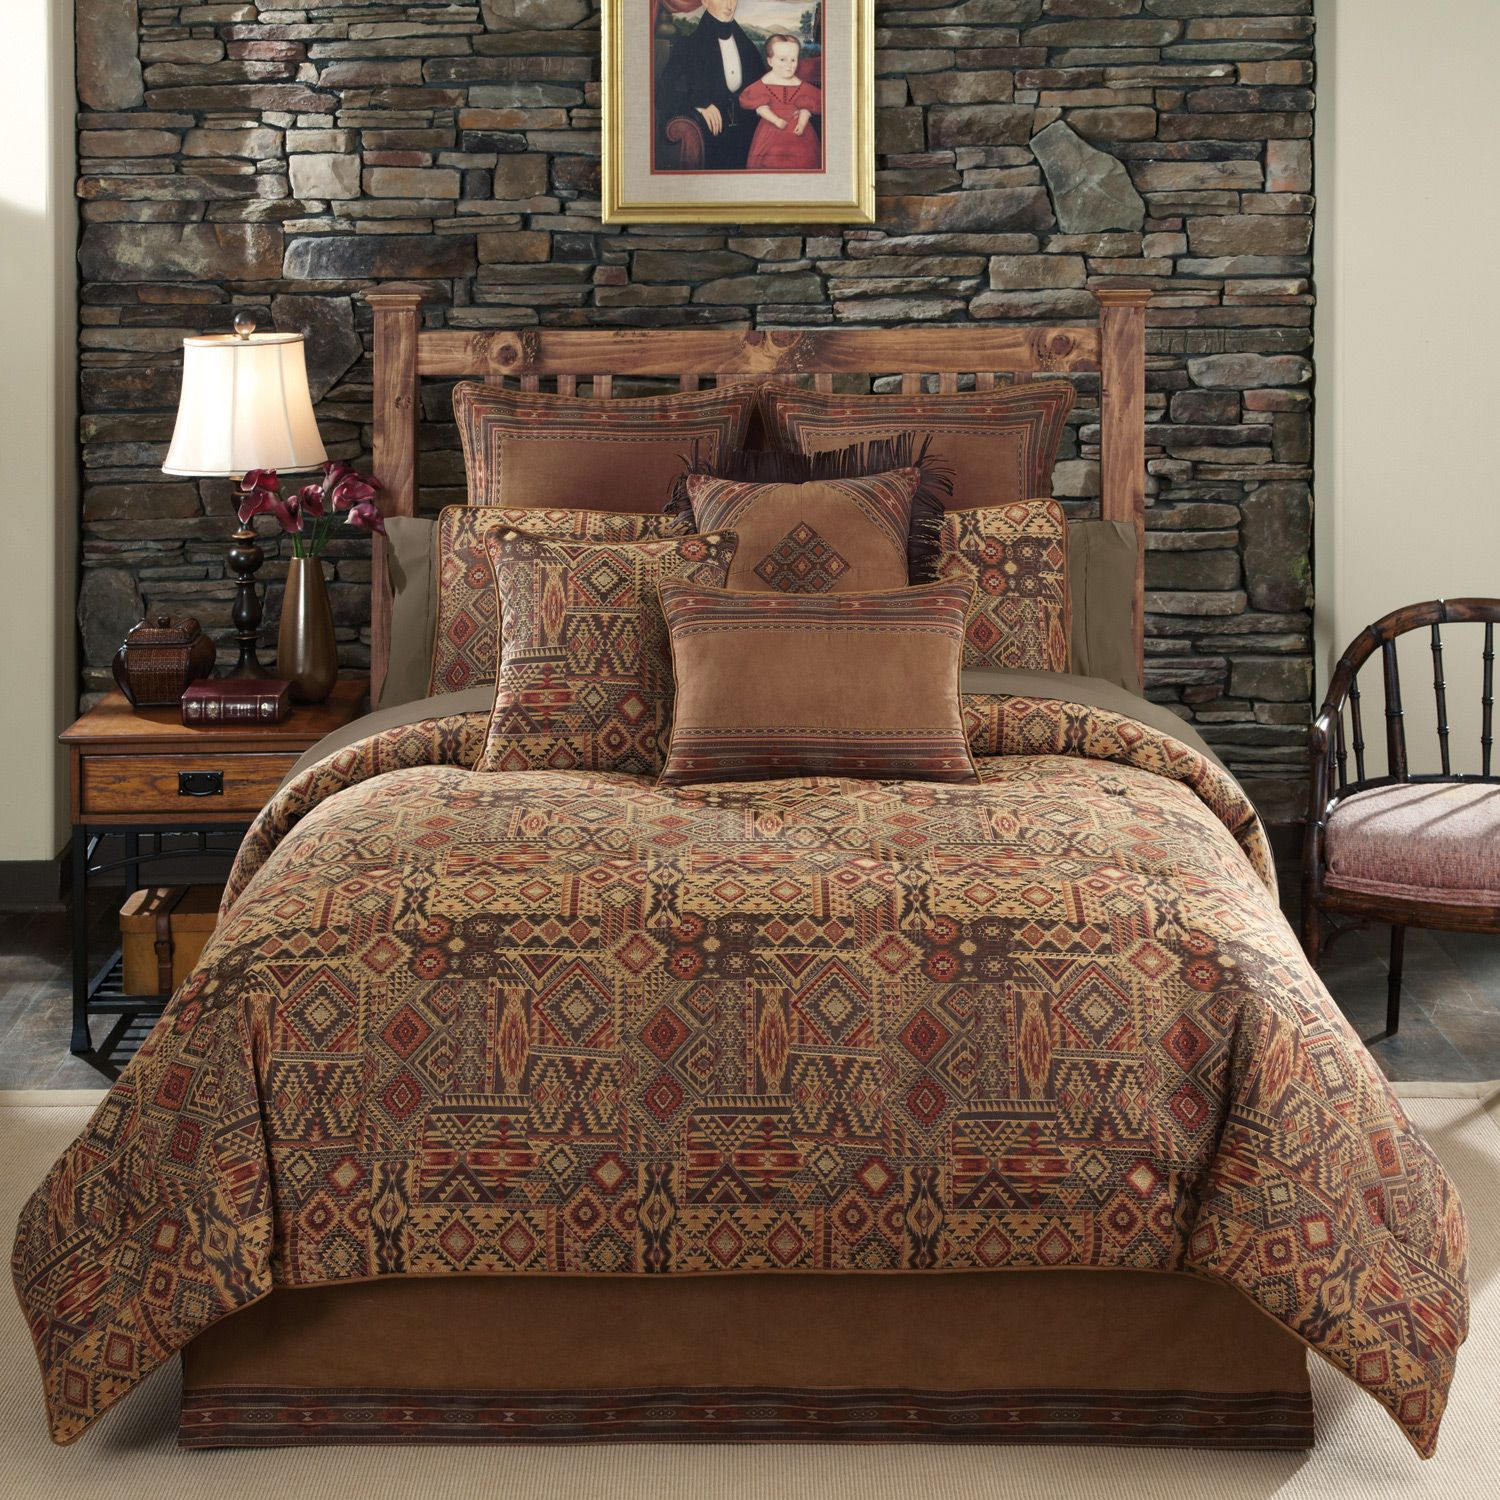 Yosemite Bedding Collection Croscill Collections Comforters